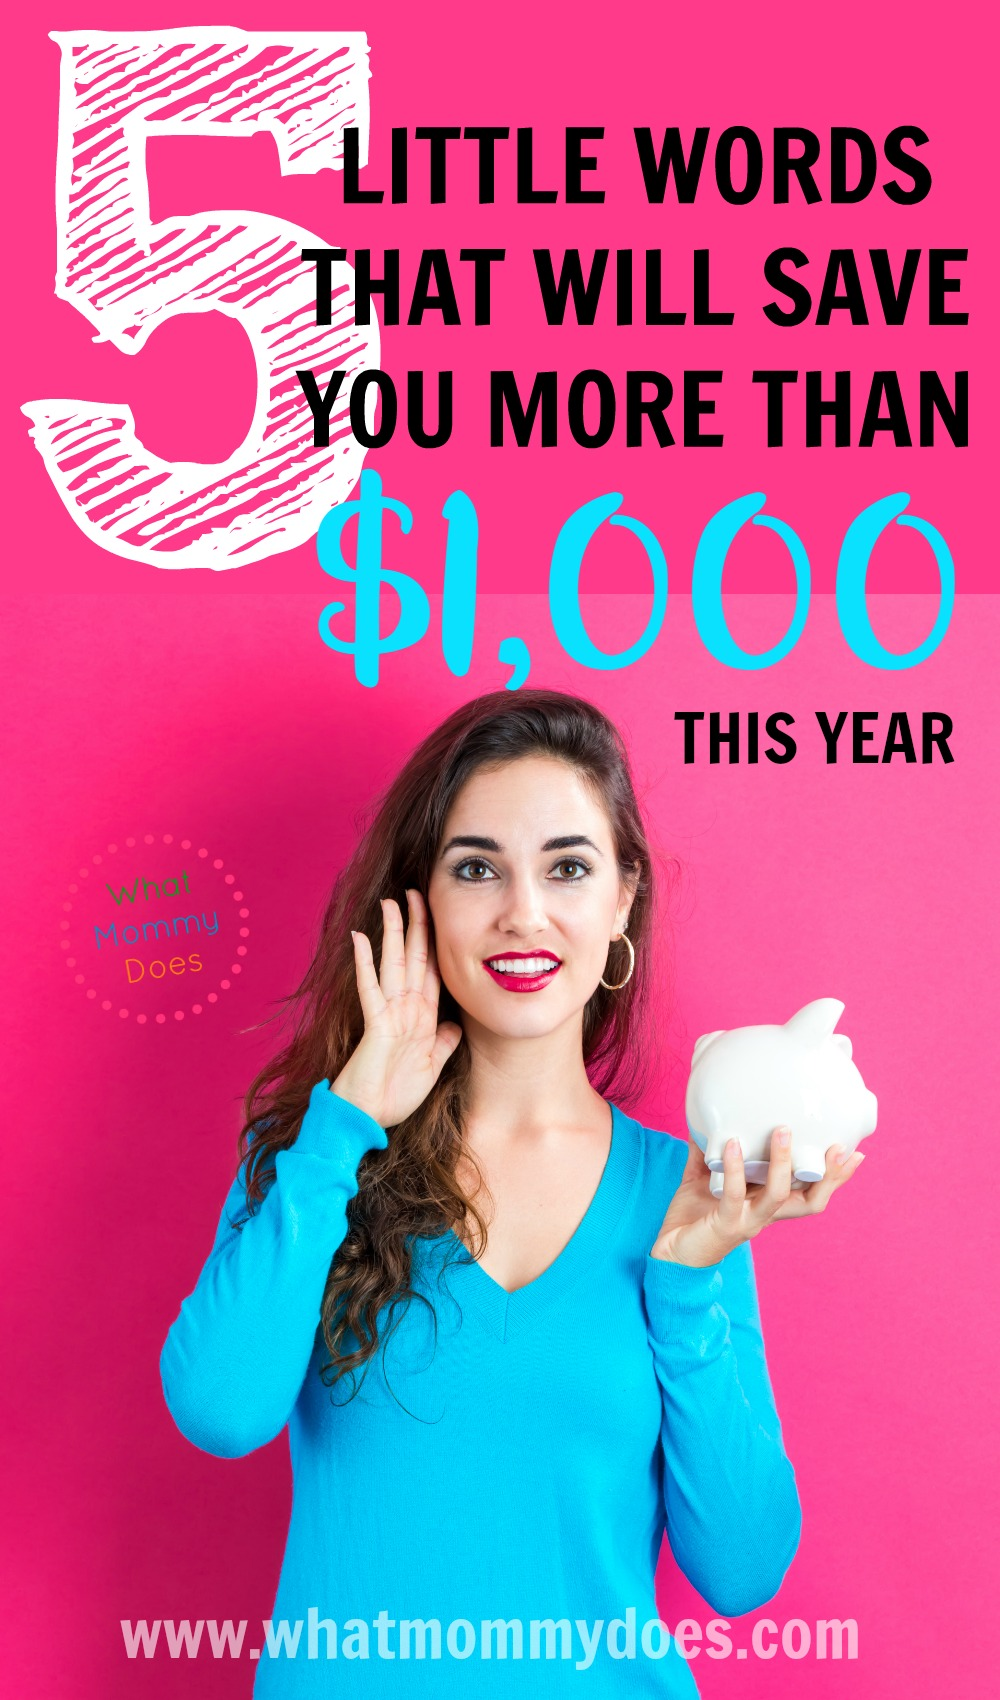 This works like a charm - any time I'm faced with an impulse buy, I say these 5 words & I can usually prevent myself from buying unnecessary junk!! I need all the budget tricks I can get to save more money. I am saving up for a new house! | money saving tips, how to save $1,000, budgeting strategies & hacks